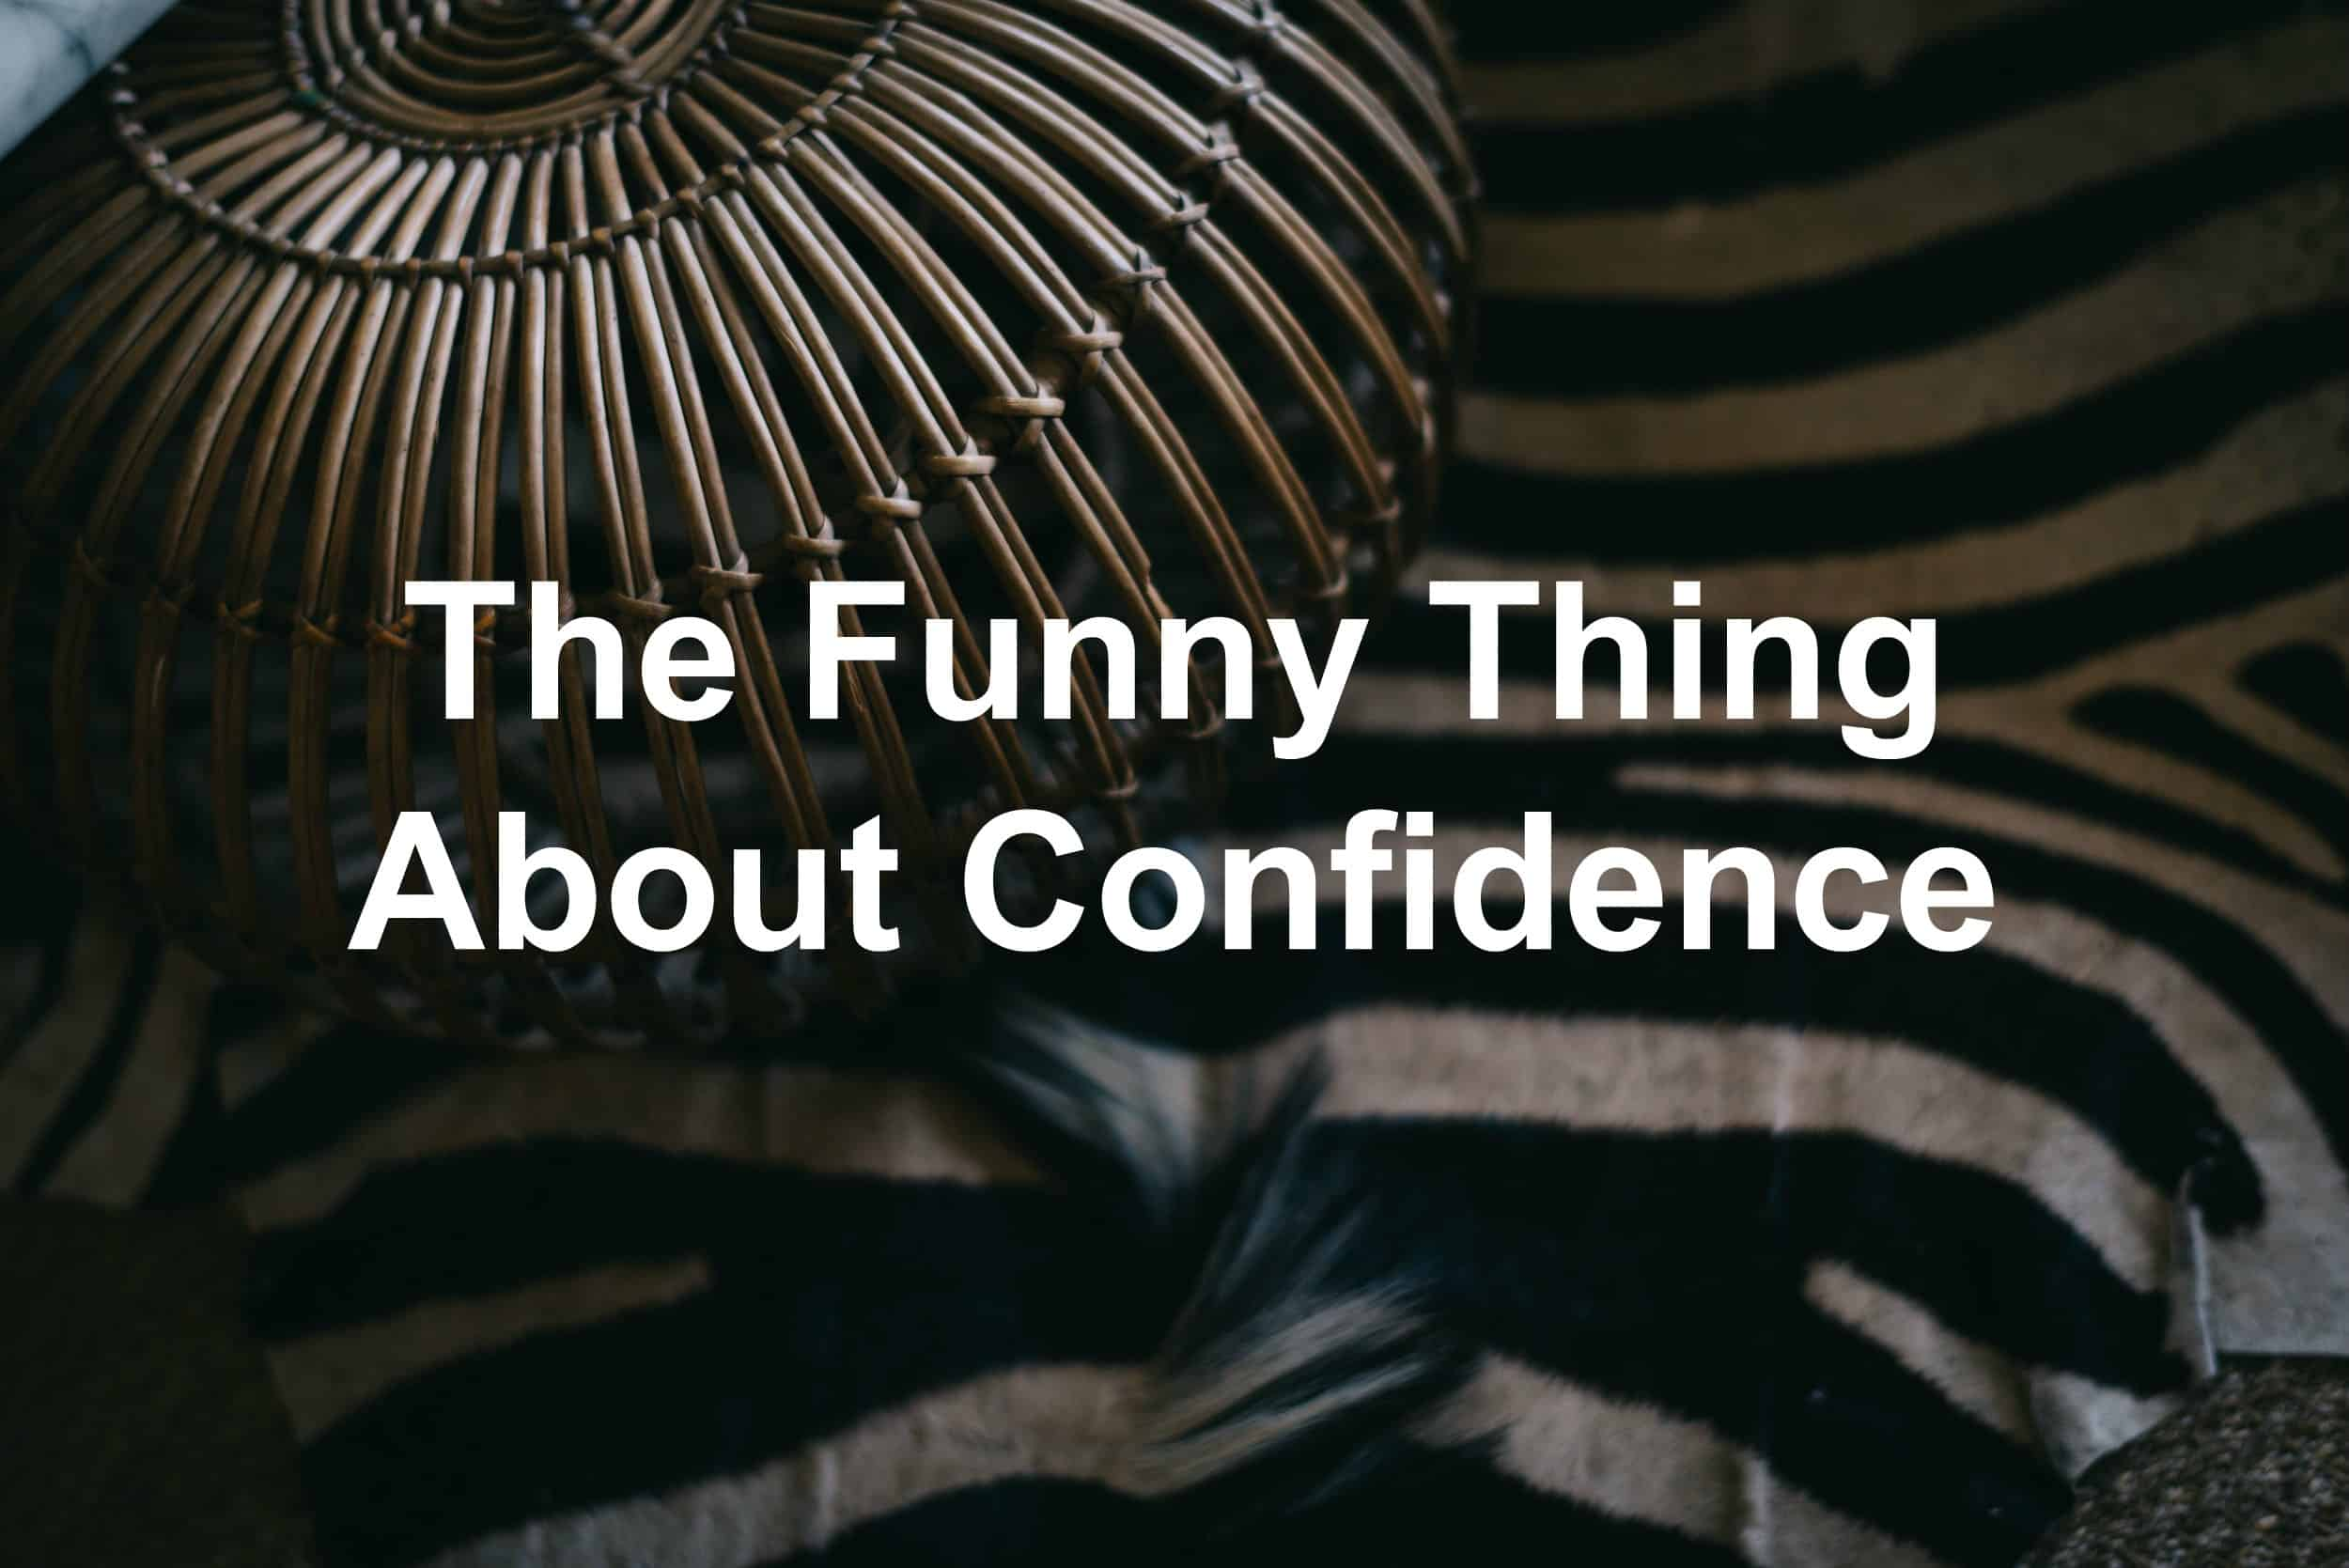 Confidence is a funny thing